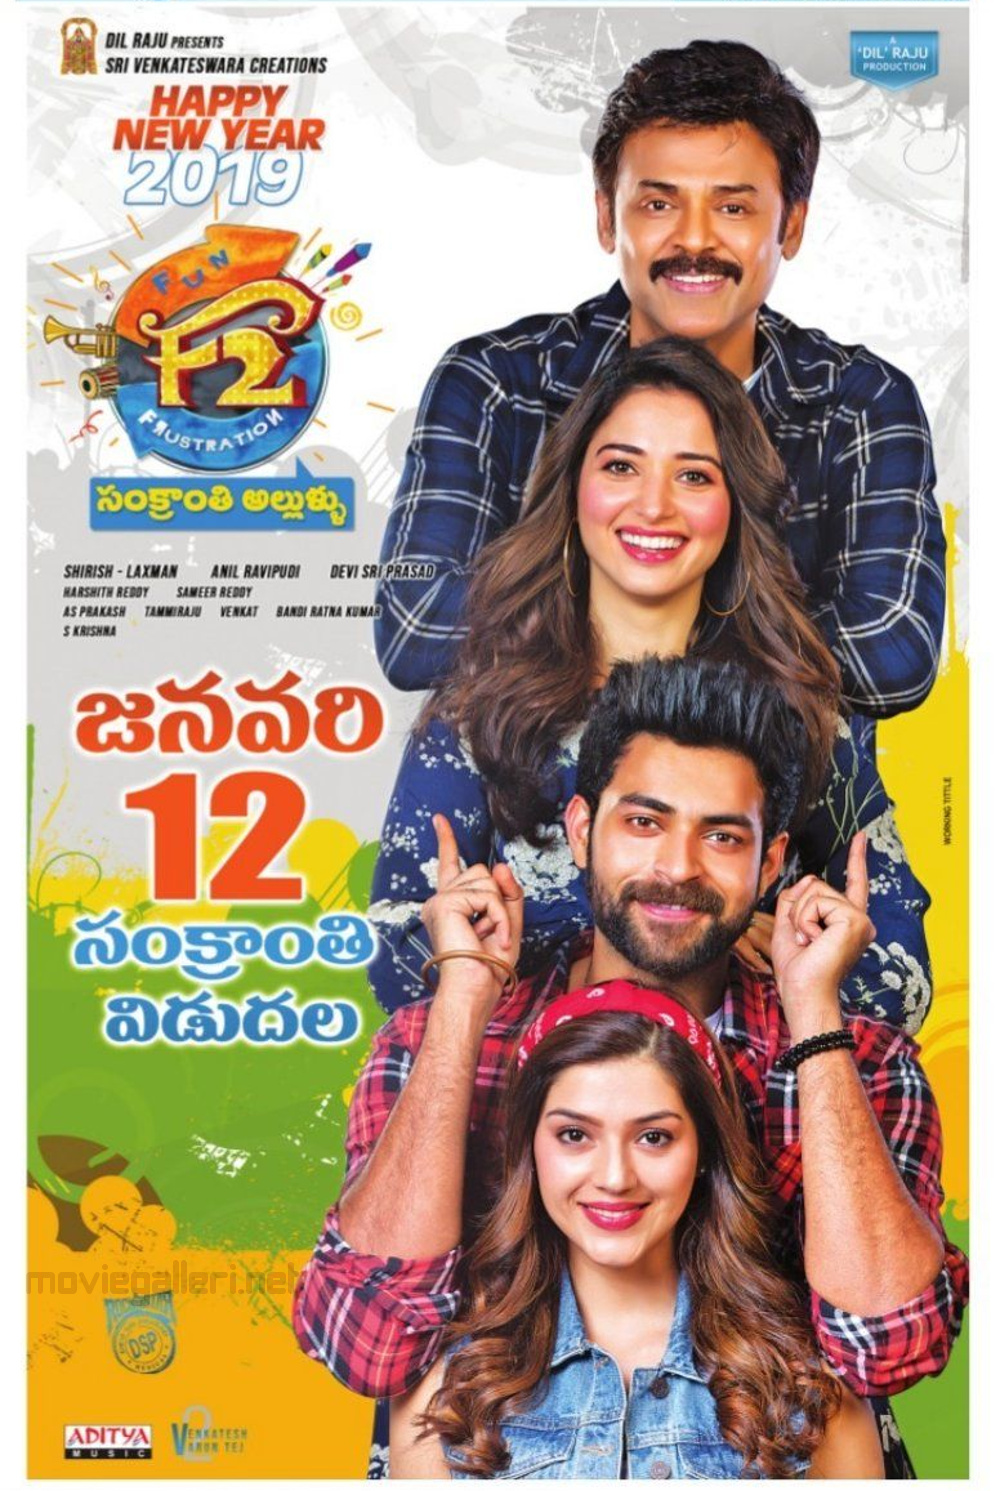 F2 Movie New Year 2019 Wishes Posters HD